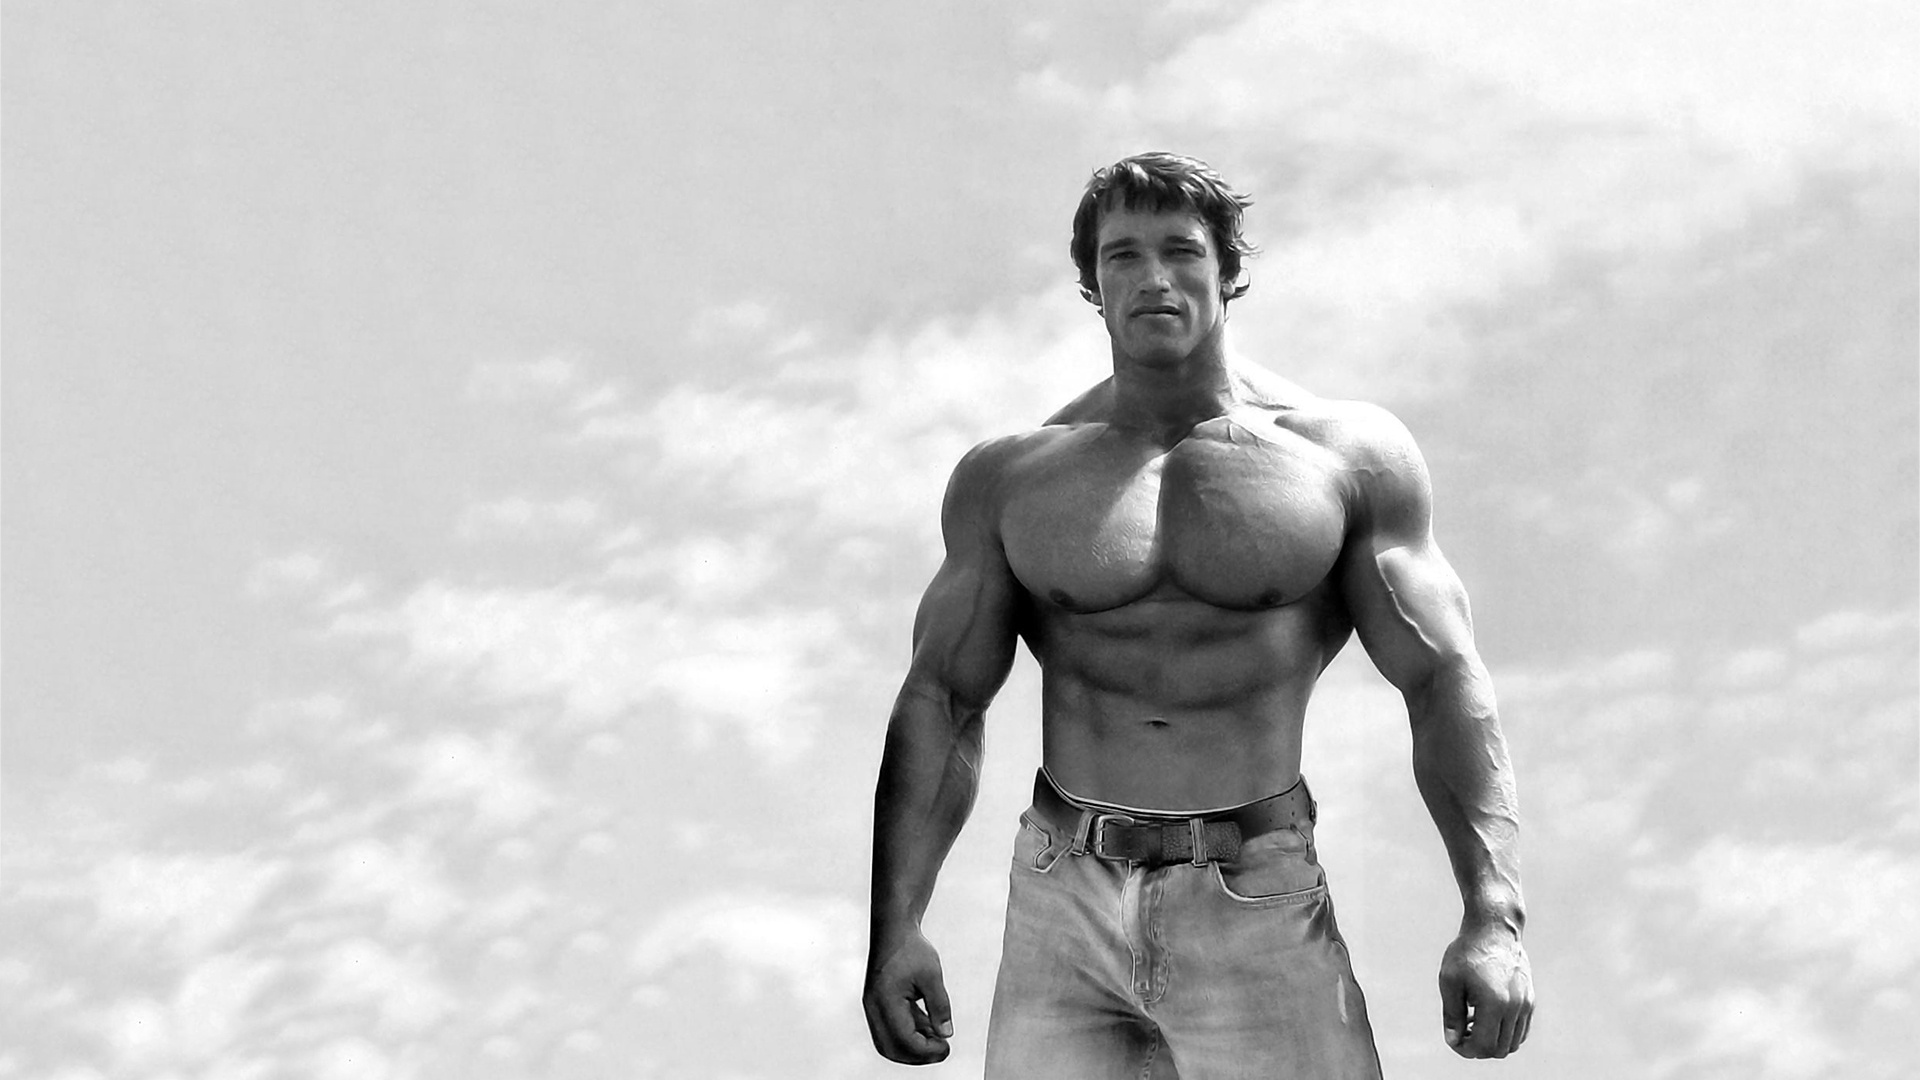 What steroids cycles did bodybuilders use back in day to build what steroids cycles did bodybuilders use back in day to build muscle mass what steroids malvernweather Image collections